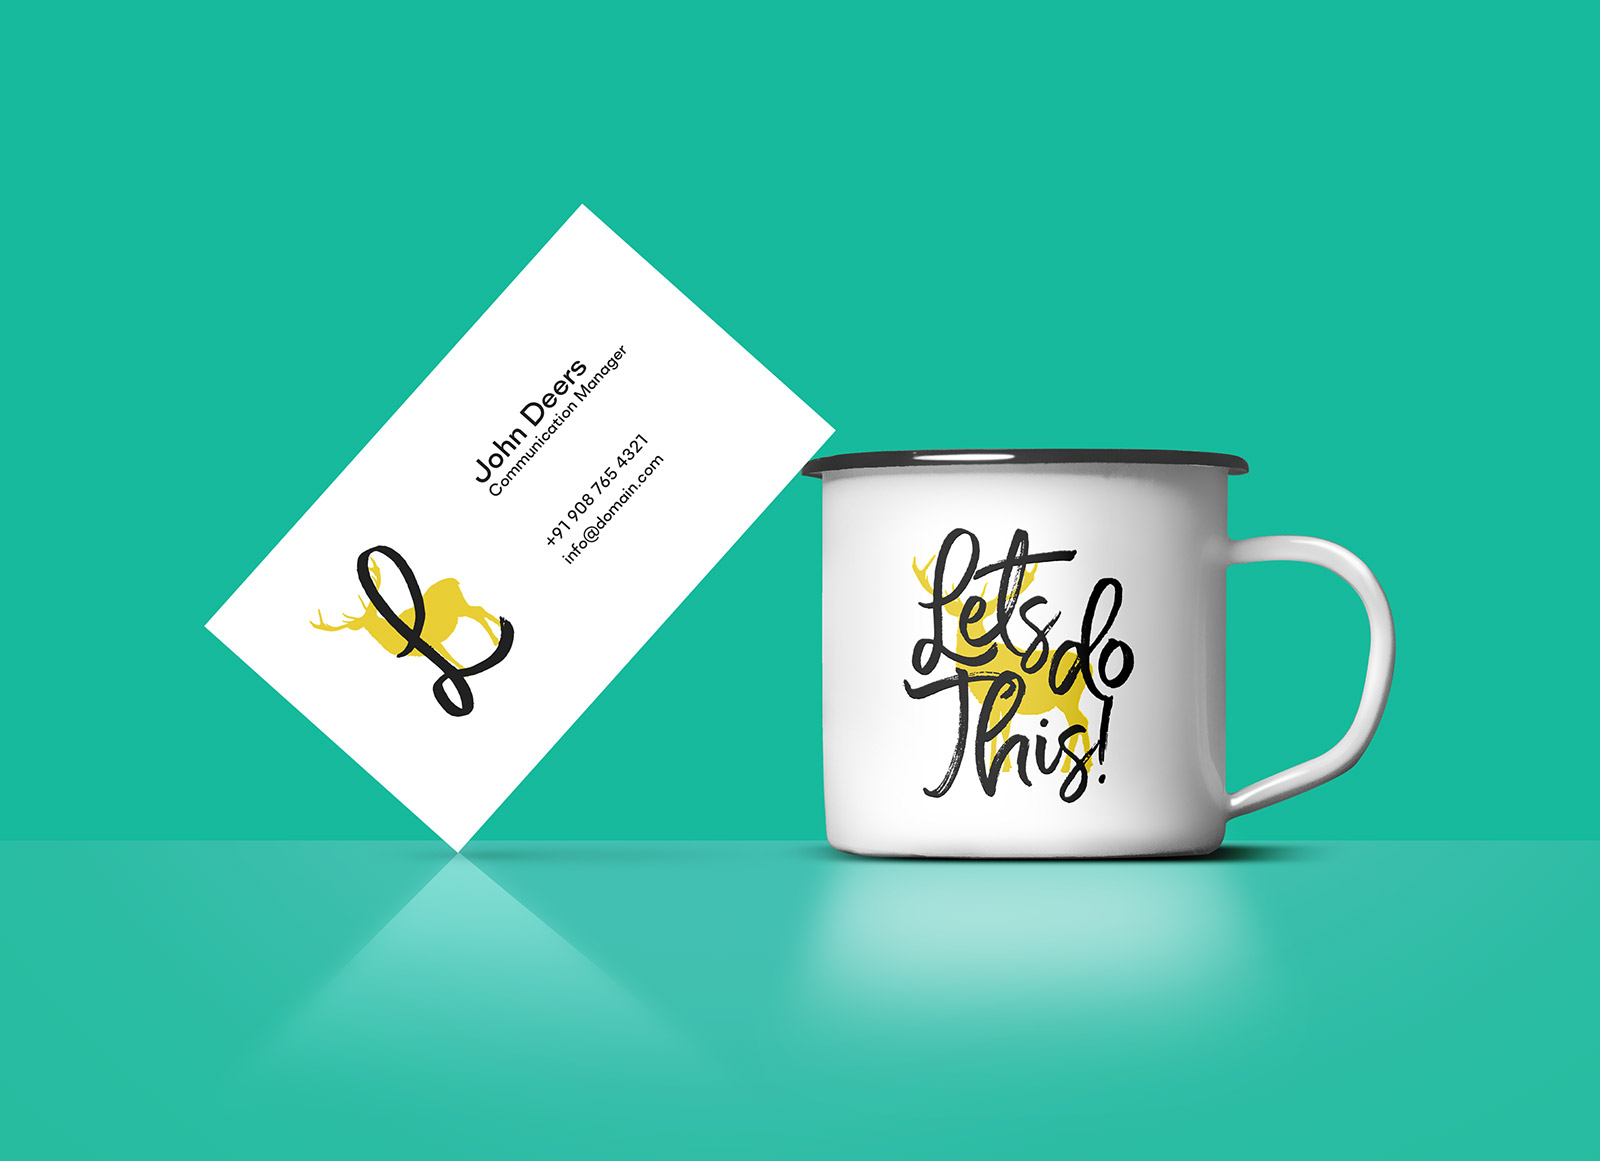 Free-Coffee-Cup-&-Business-Card-Mockup-PSD